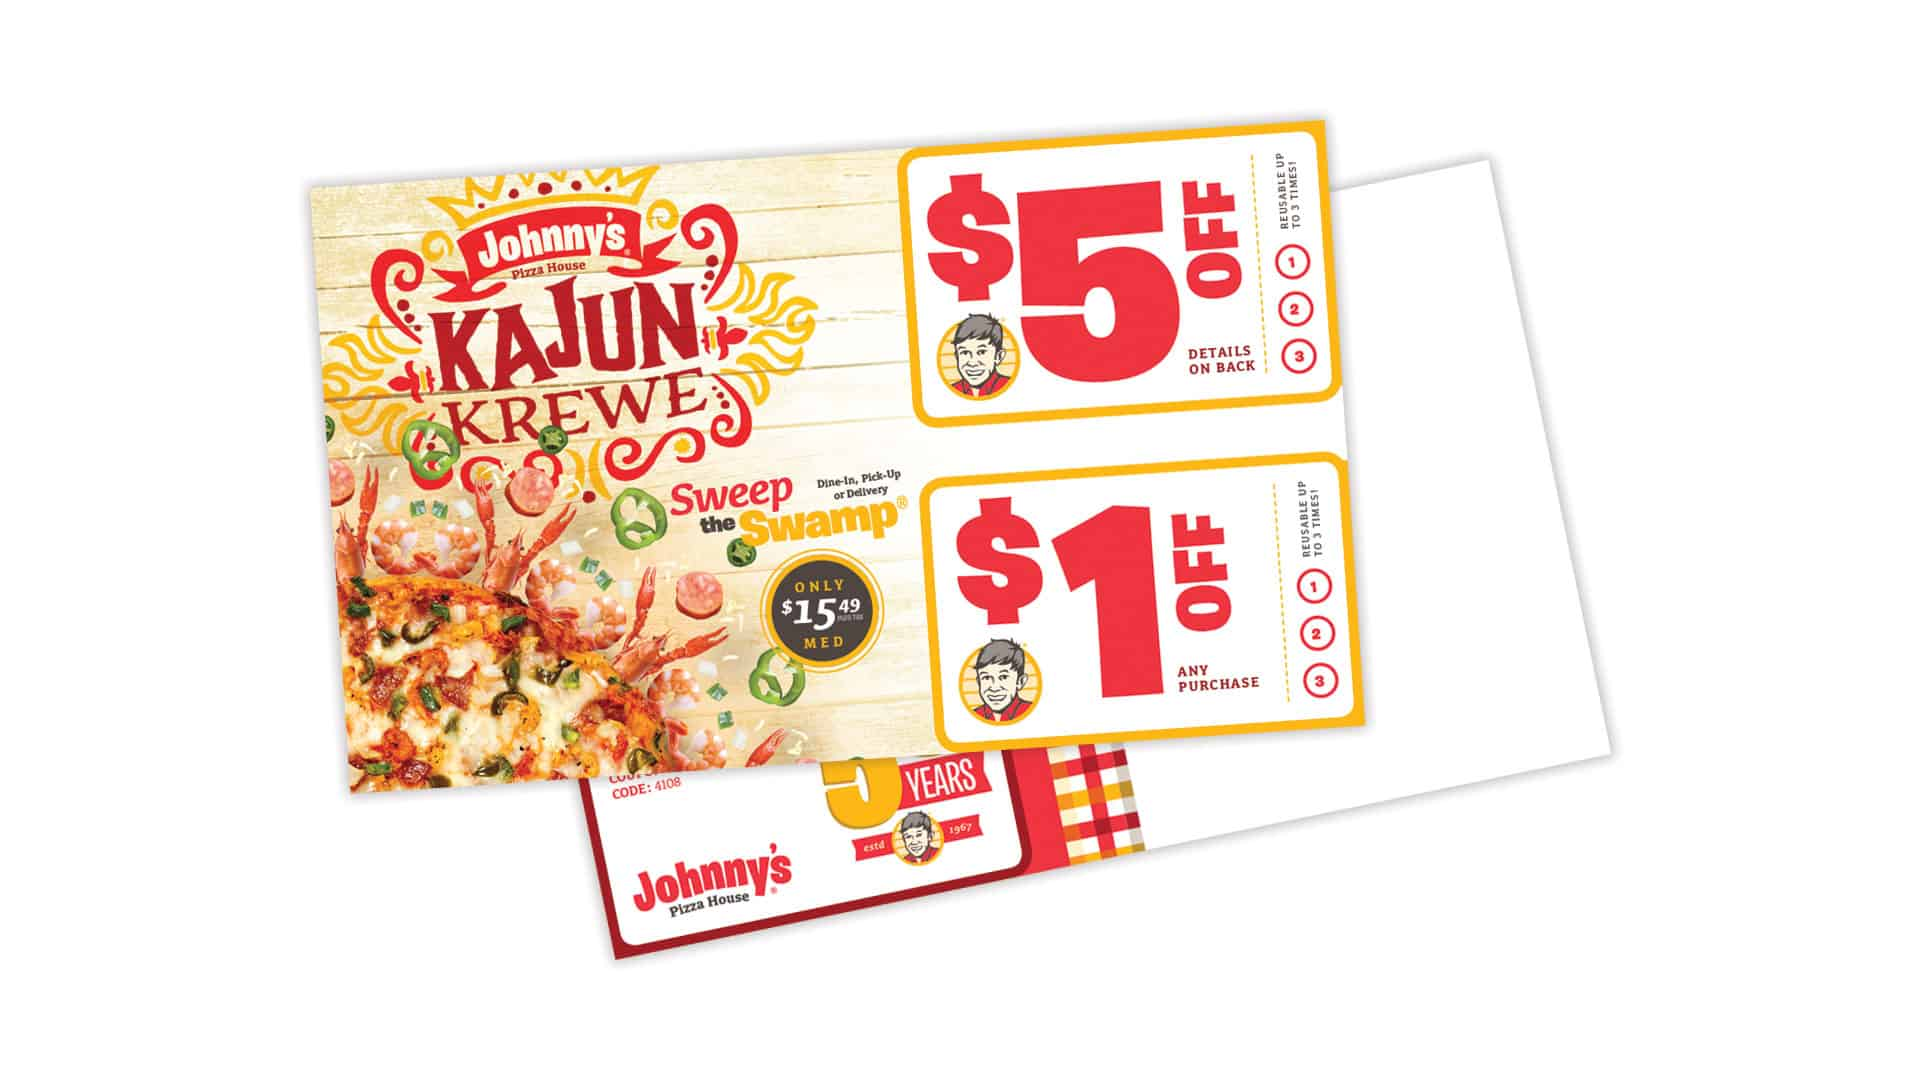 Johnny's Pizza House Kajun Krewe limited time offer marketing campaign creative direct mail marketing